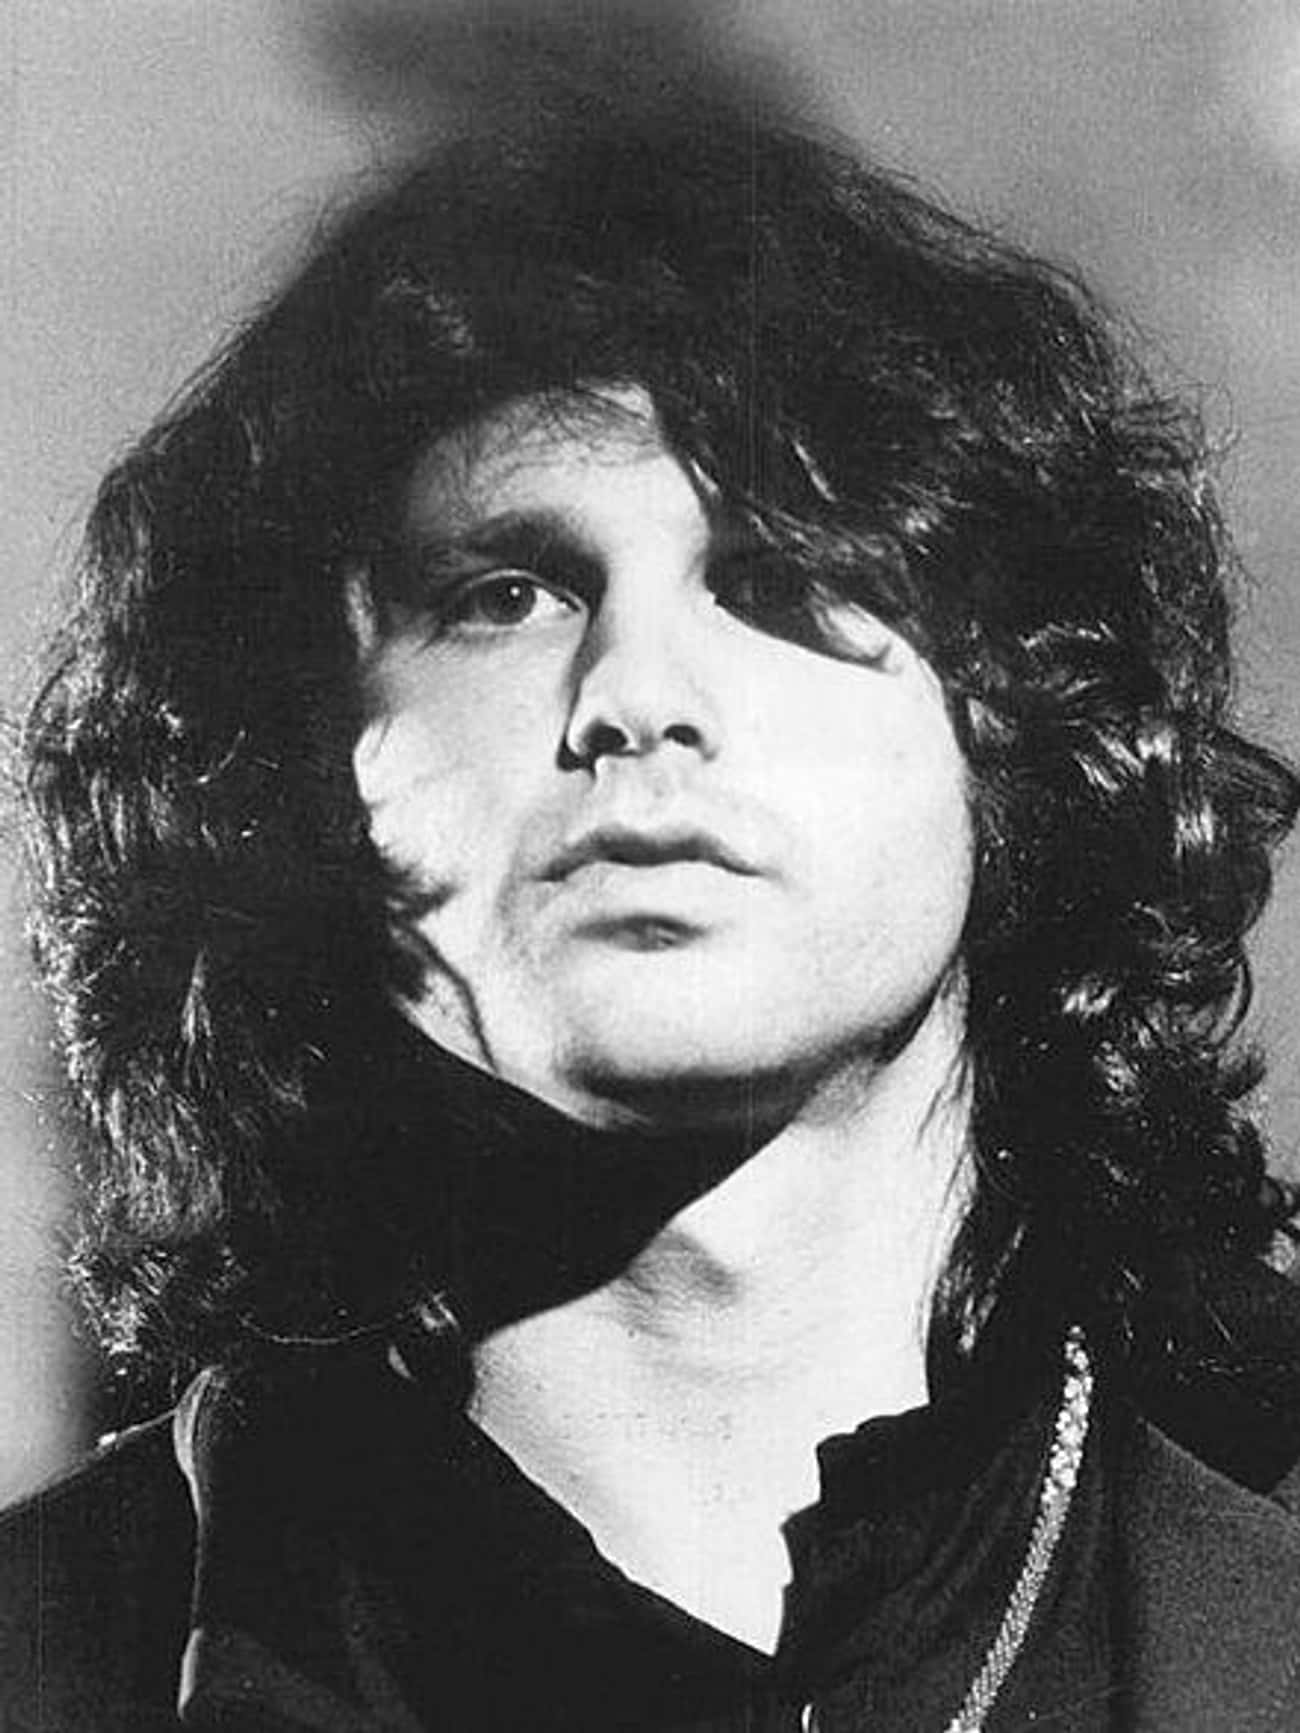 He Received A BJ While Recordi is listed (or ranked) 2 on the list Jim Morrison Was A Rock God, But His Love Life Was Tragically Messed Up